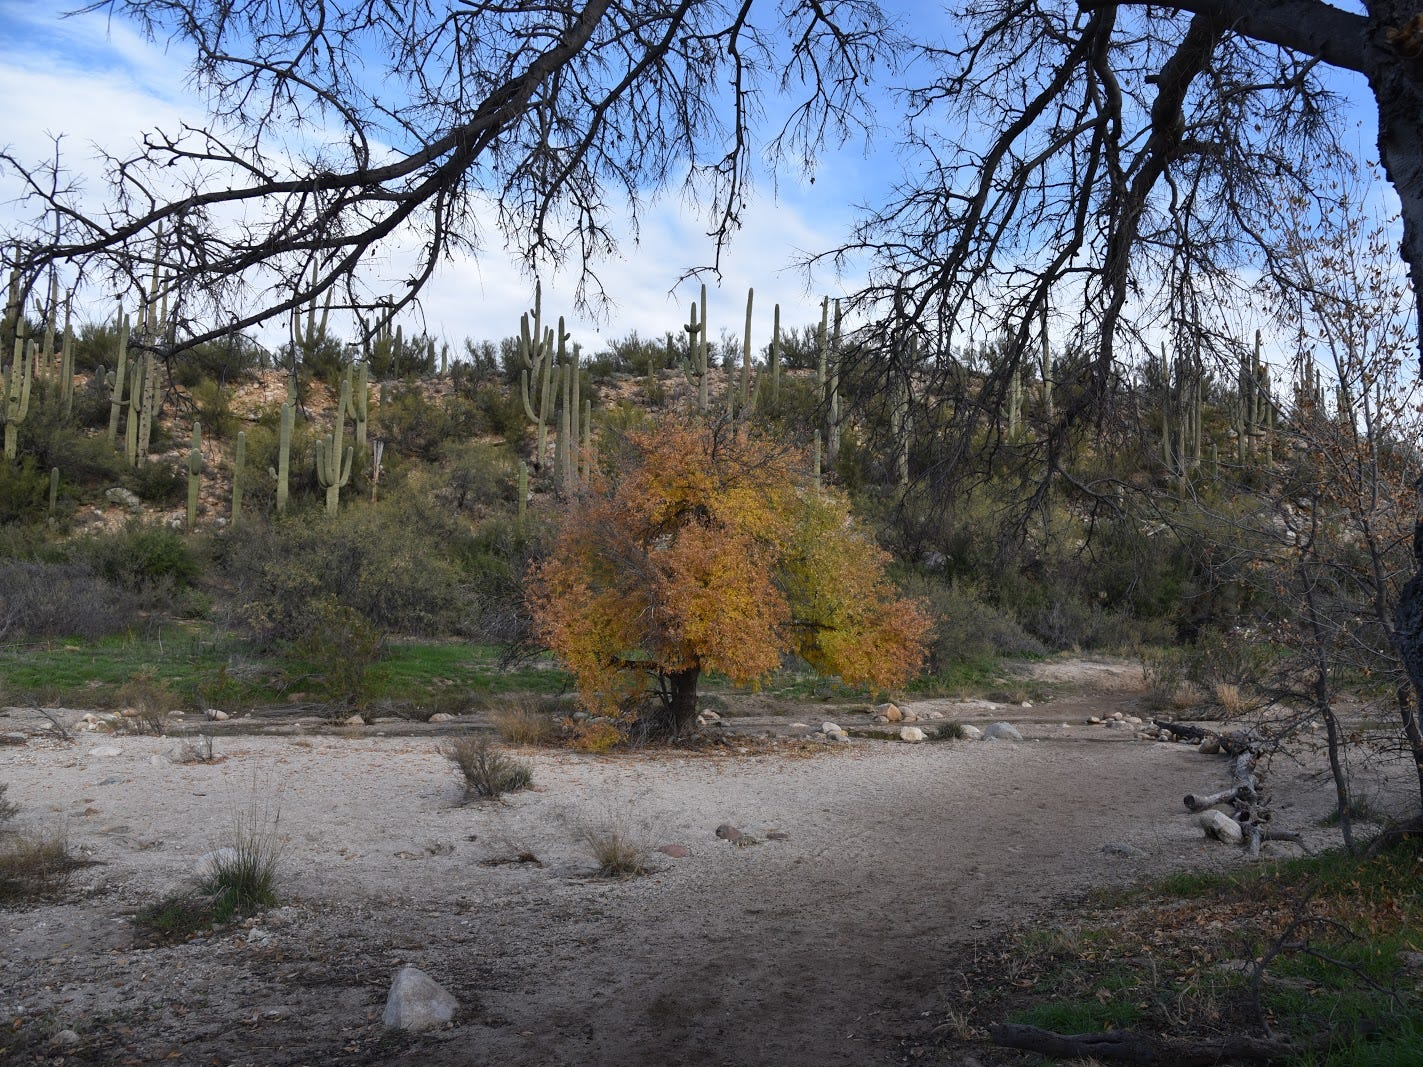 Saguaros and riparian plants grow in close proximity along the Sutherland Trail.